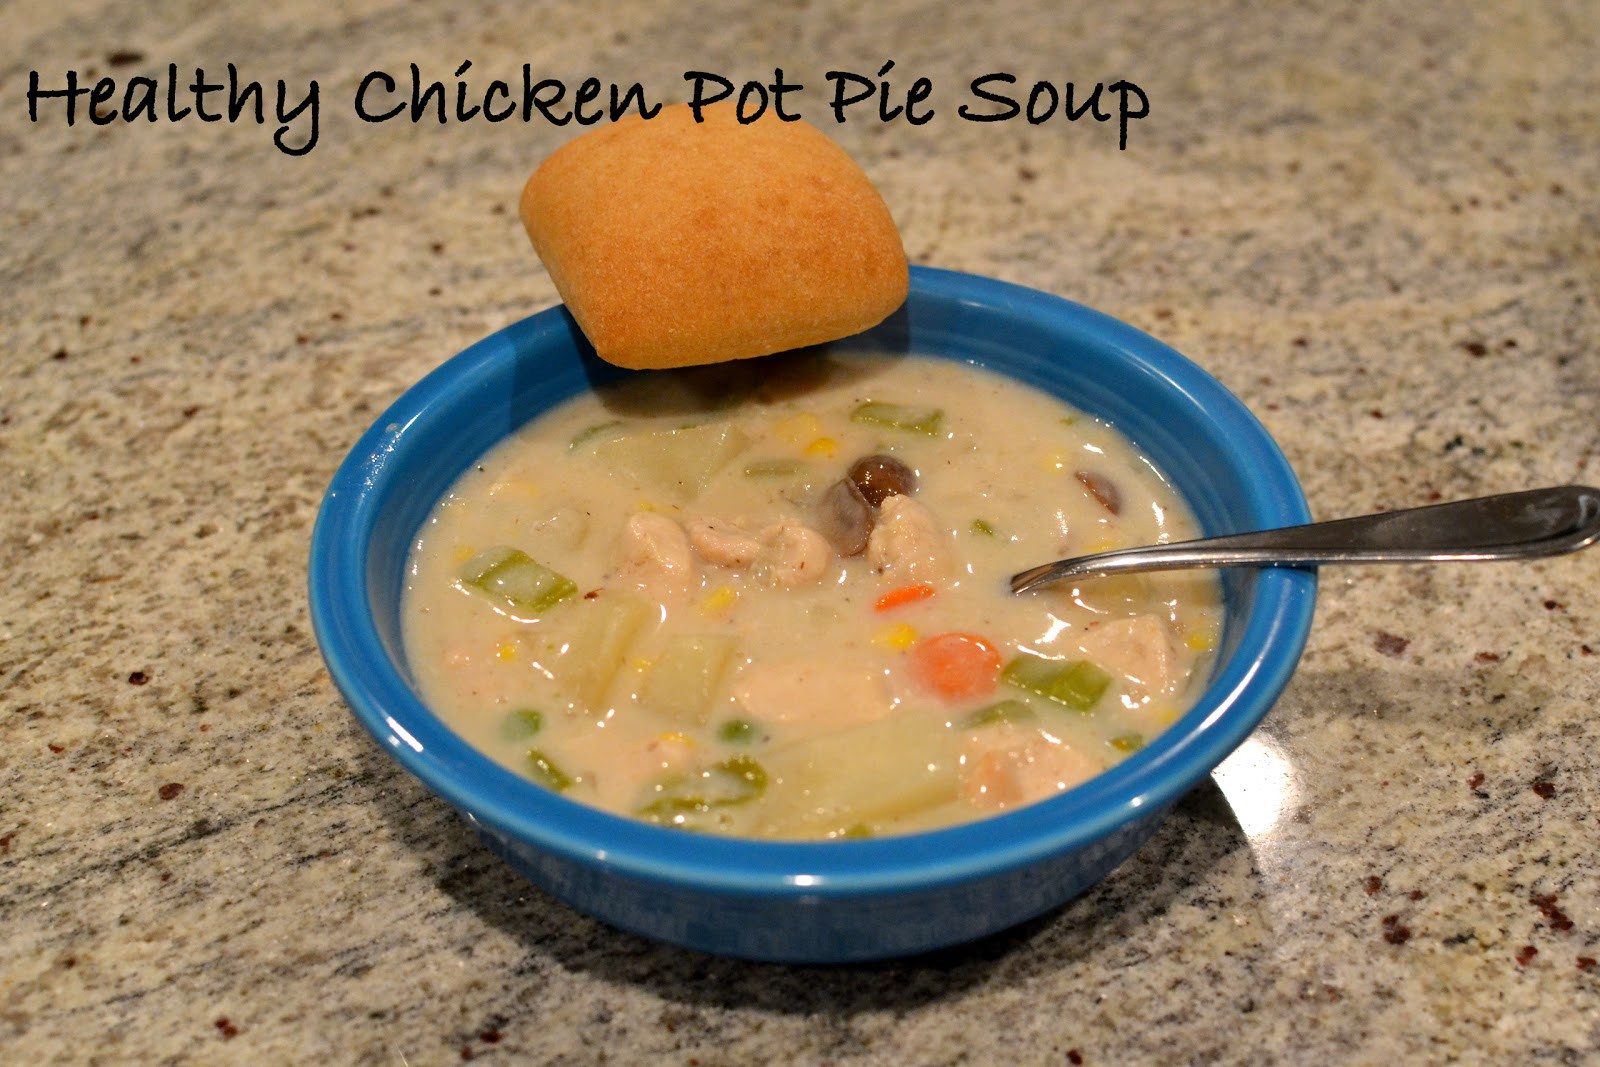 Healthy Chicken Pot Pie  Healthy Chicken Pot Pie Soup LaForce Be With You